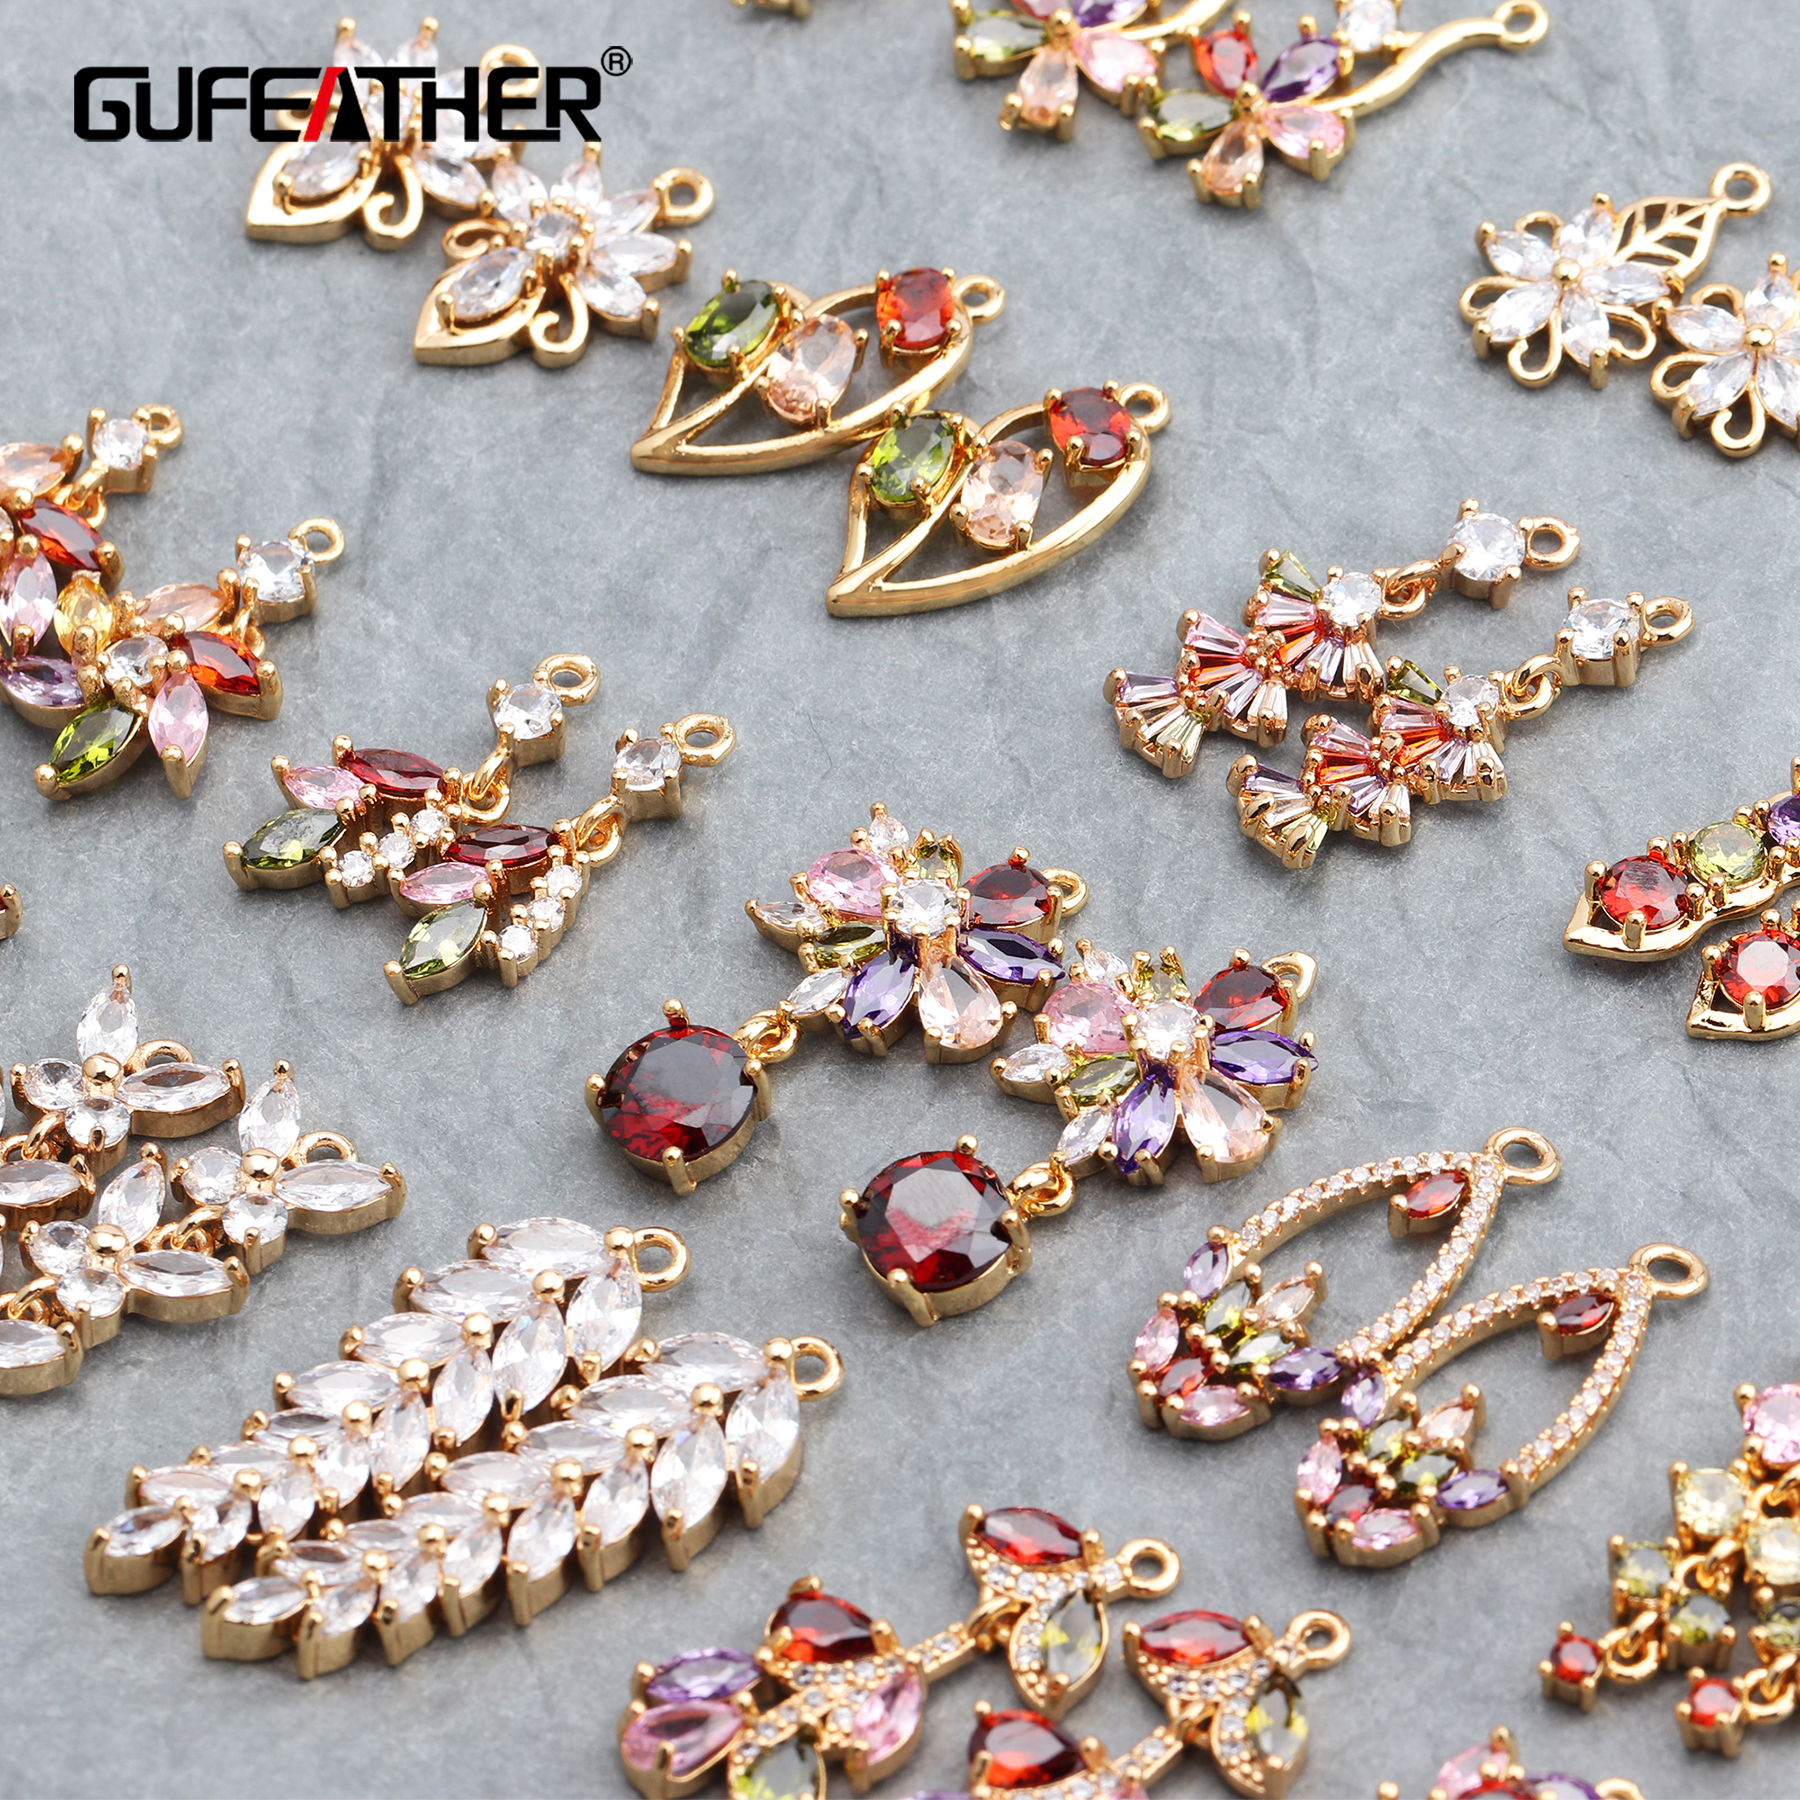 GUFEATHER M593,jewelry Accessories,18k Gold Plated,diy Zircon Pendant,hand Made,ear Chain,diy Earrings,jewelry Making,6pcs/lot